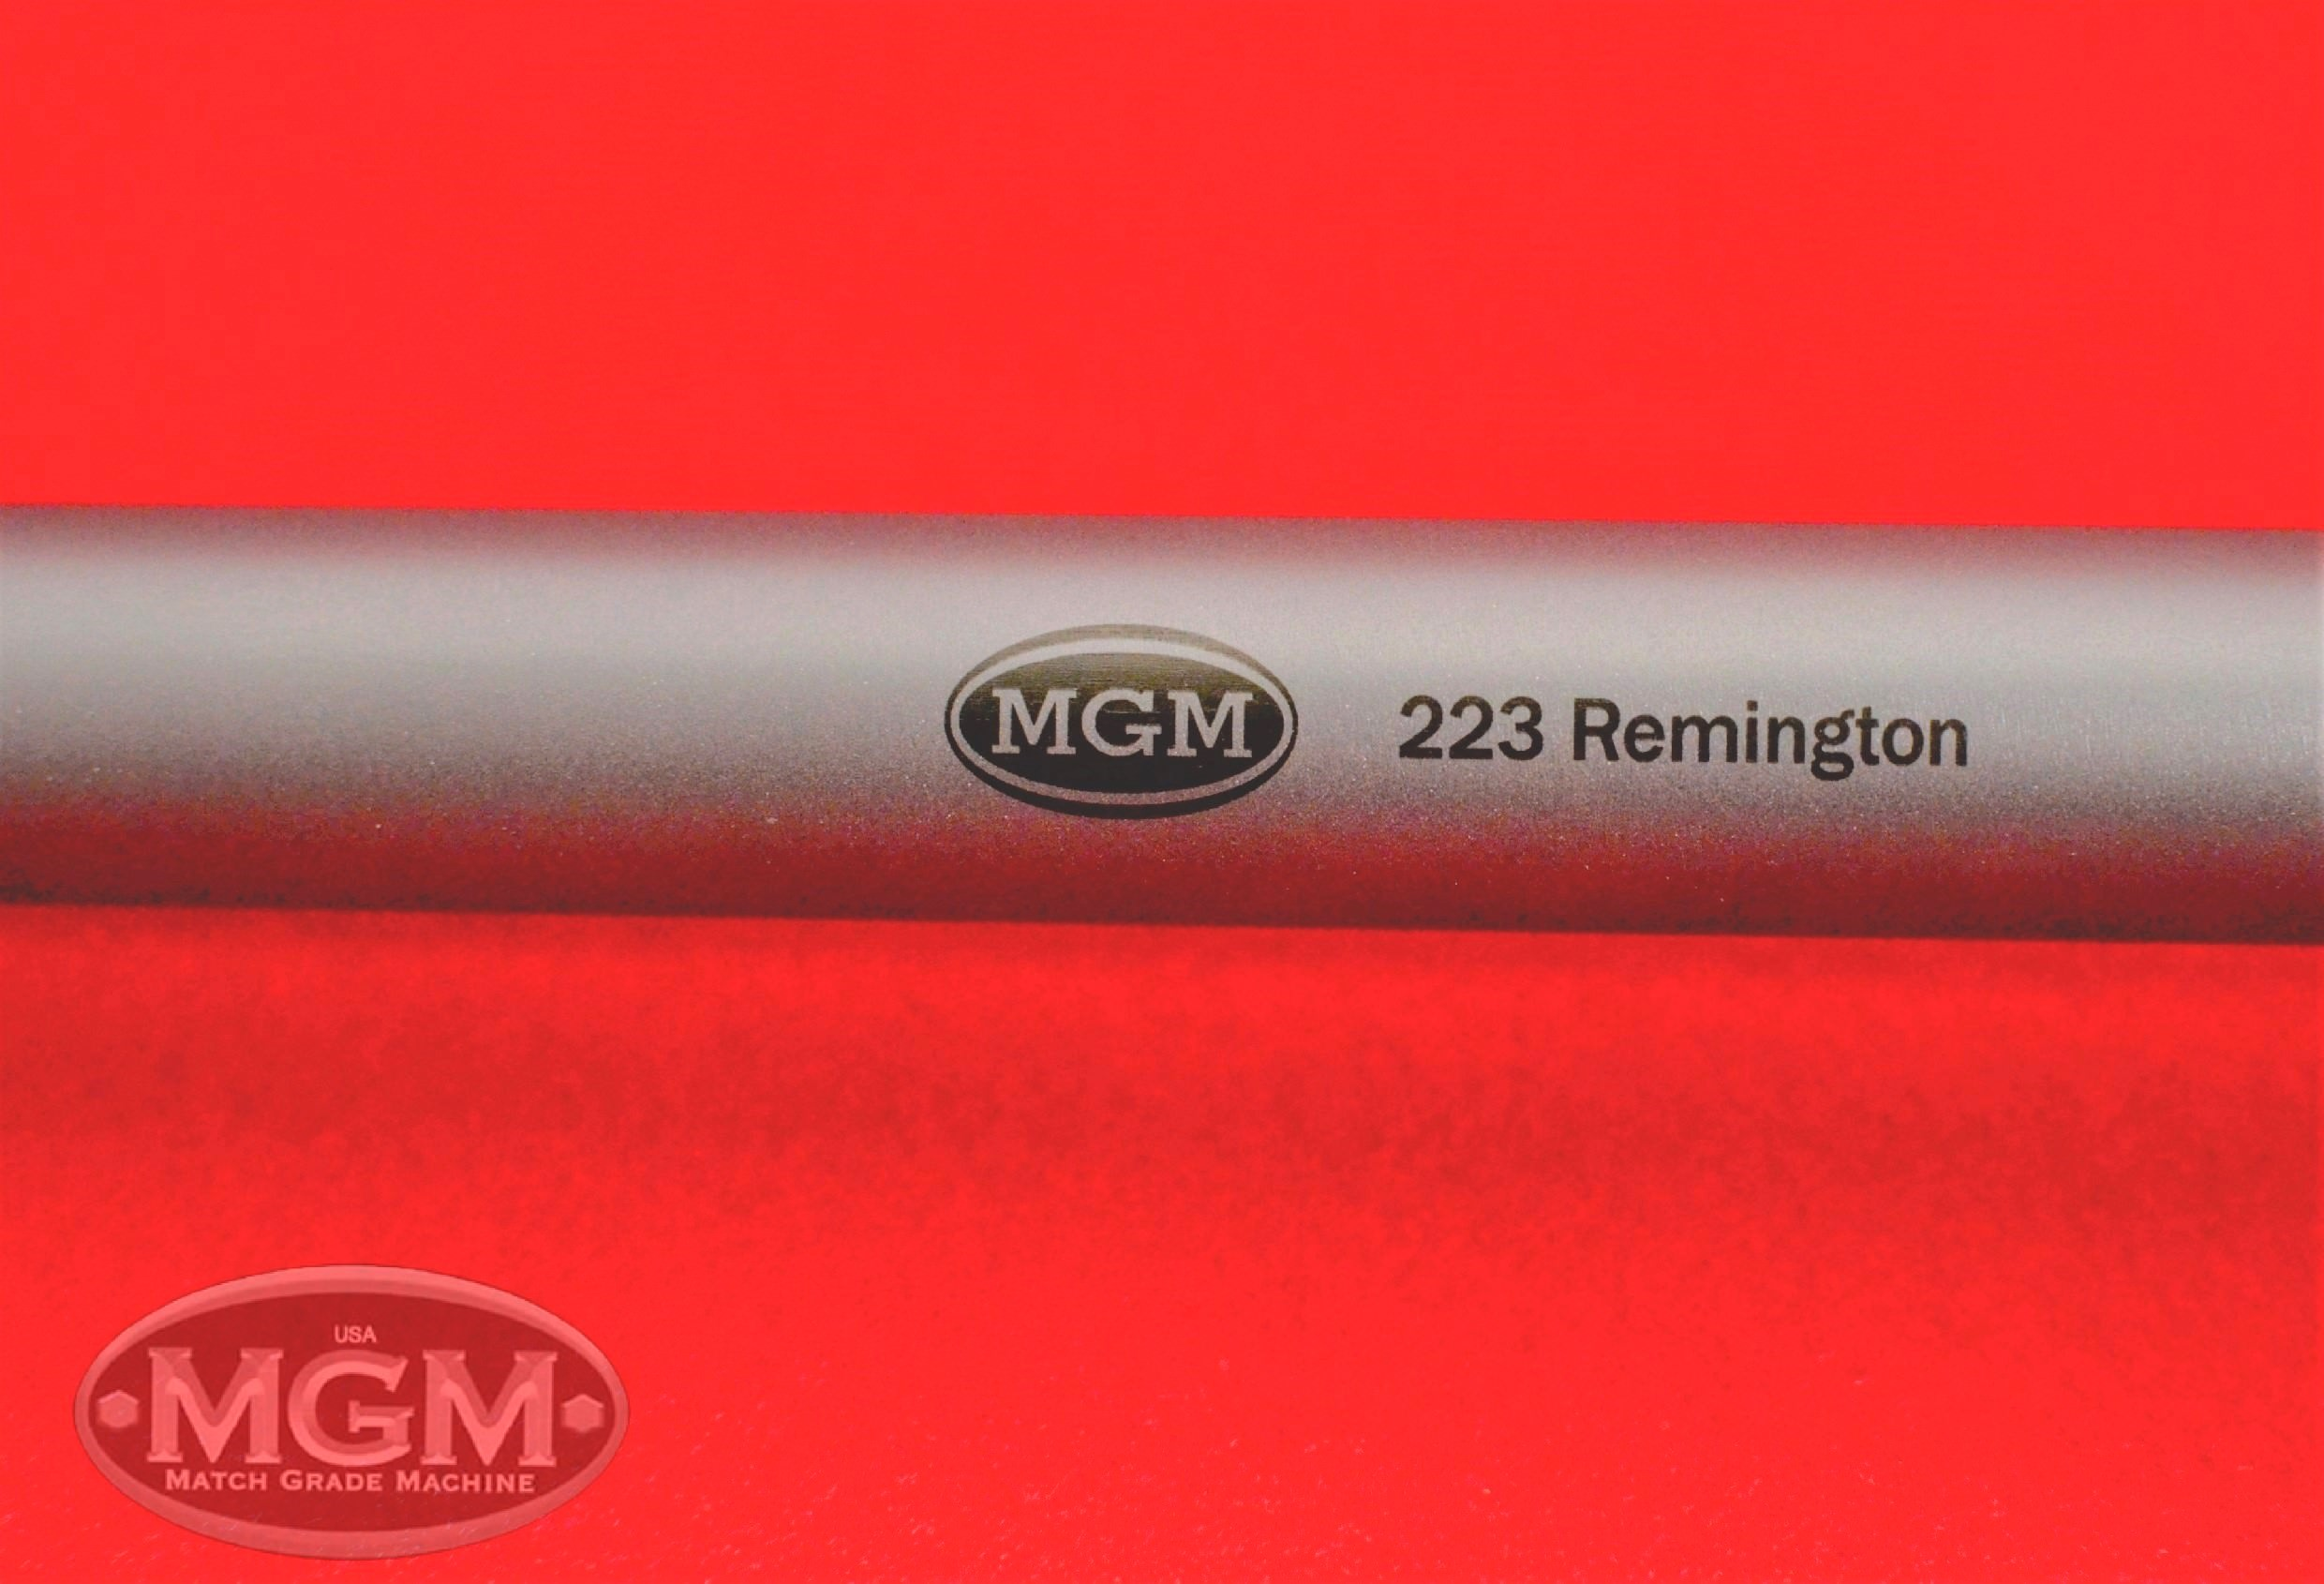 223Remington, Thompson Center, Match Grade Machine, MGM, Barrels, Encore, Stainless Steel